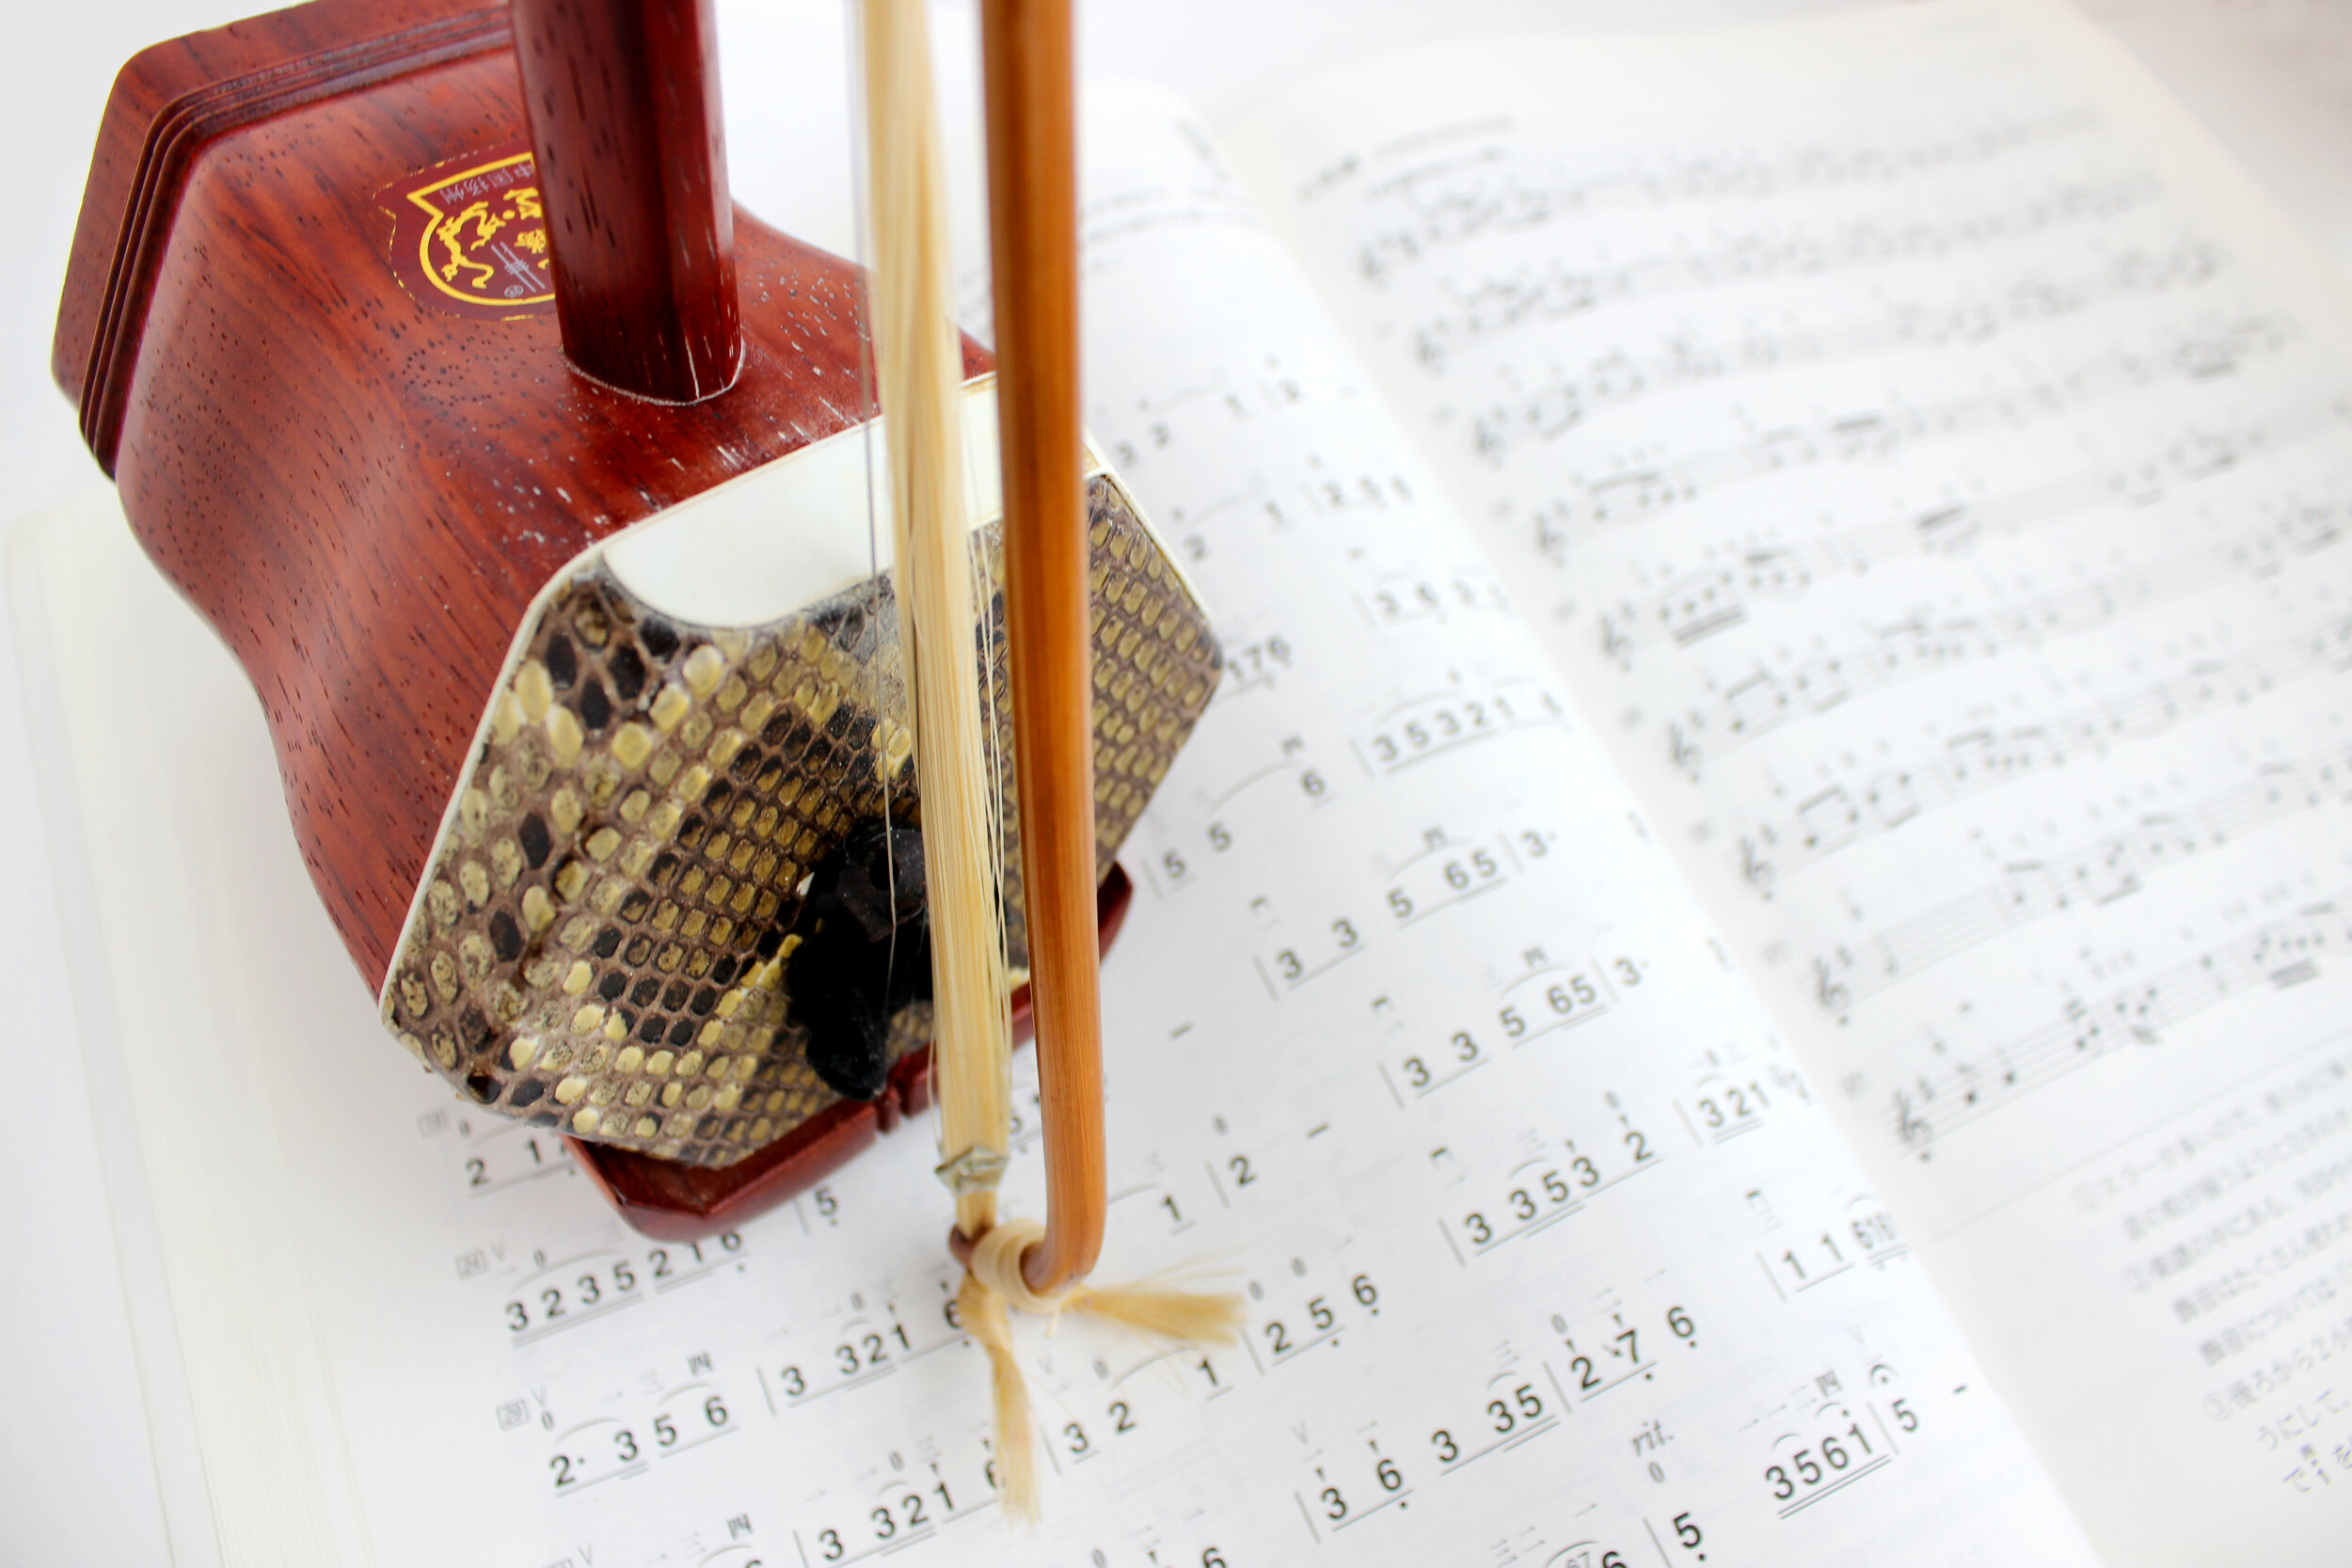 Erhu is a traditional Chinese musical instrument. It has two strings and is played with a bow between the strings. The sound box is usually covered with python skin. The background image is sheet music in jianpu musical notation.